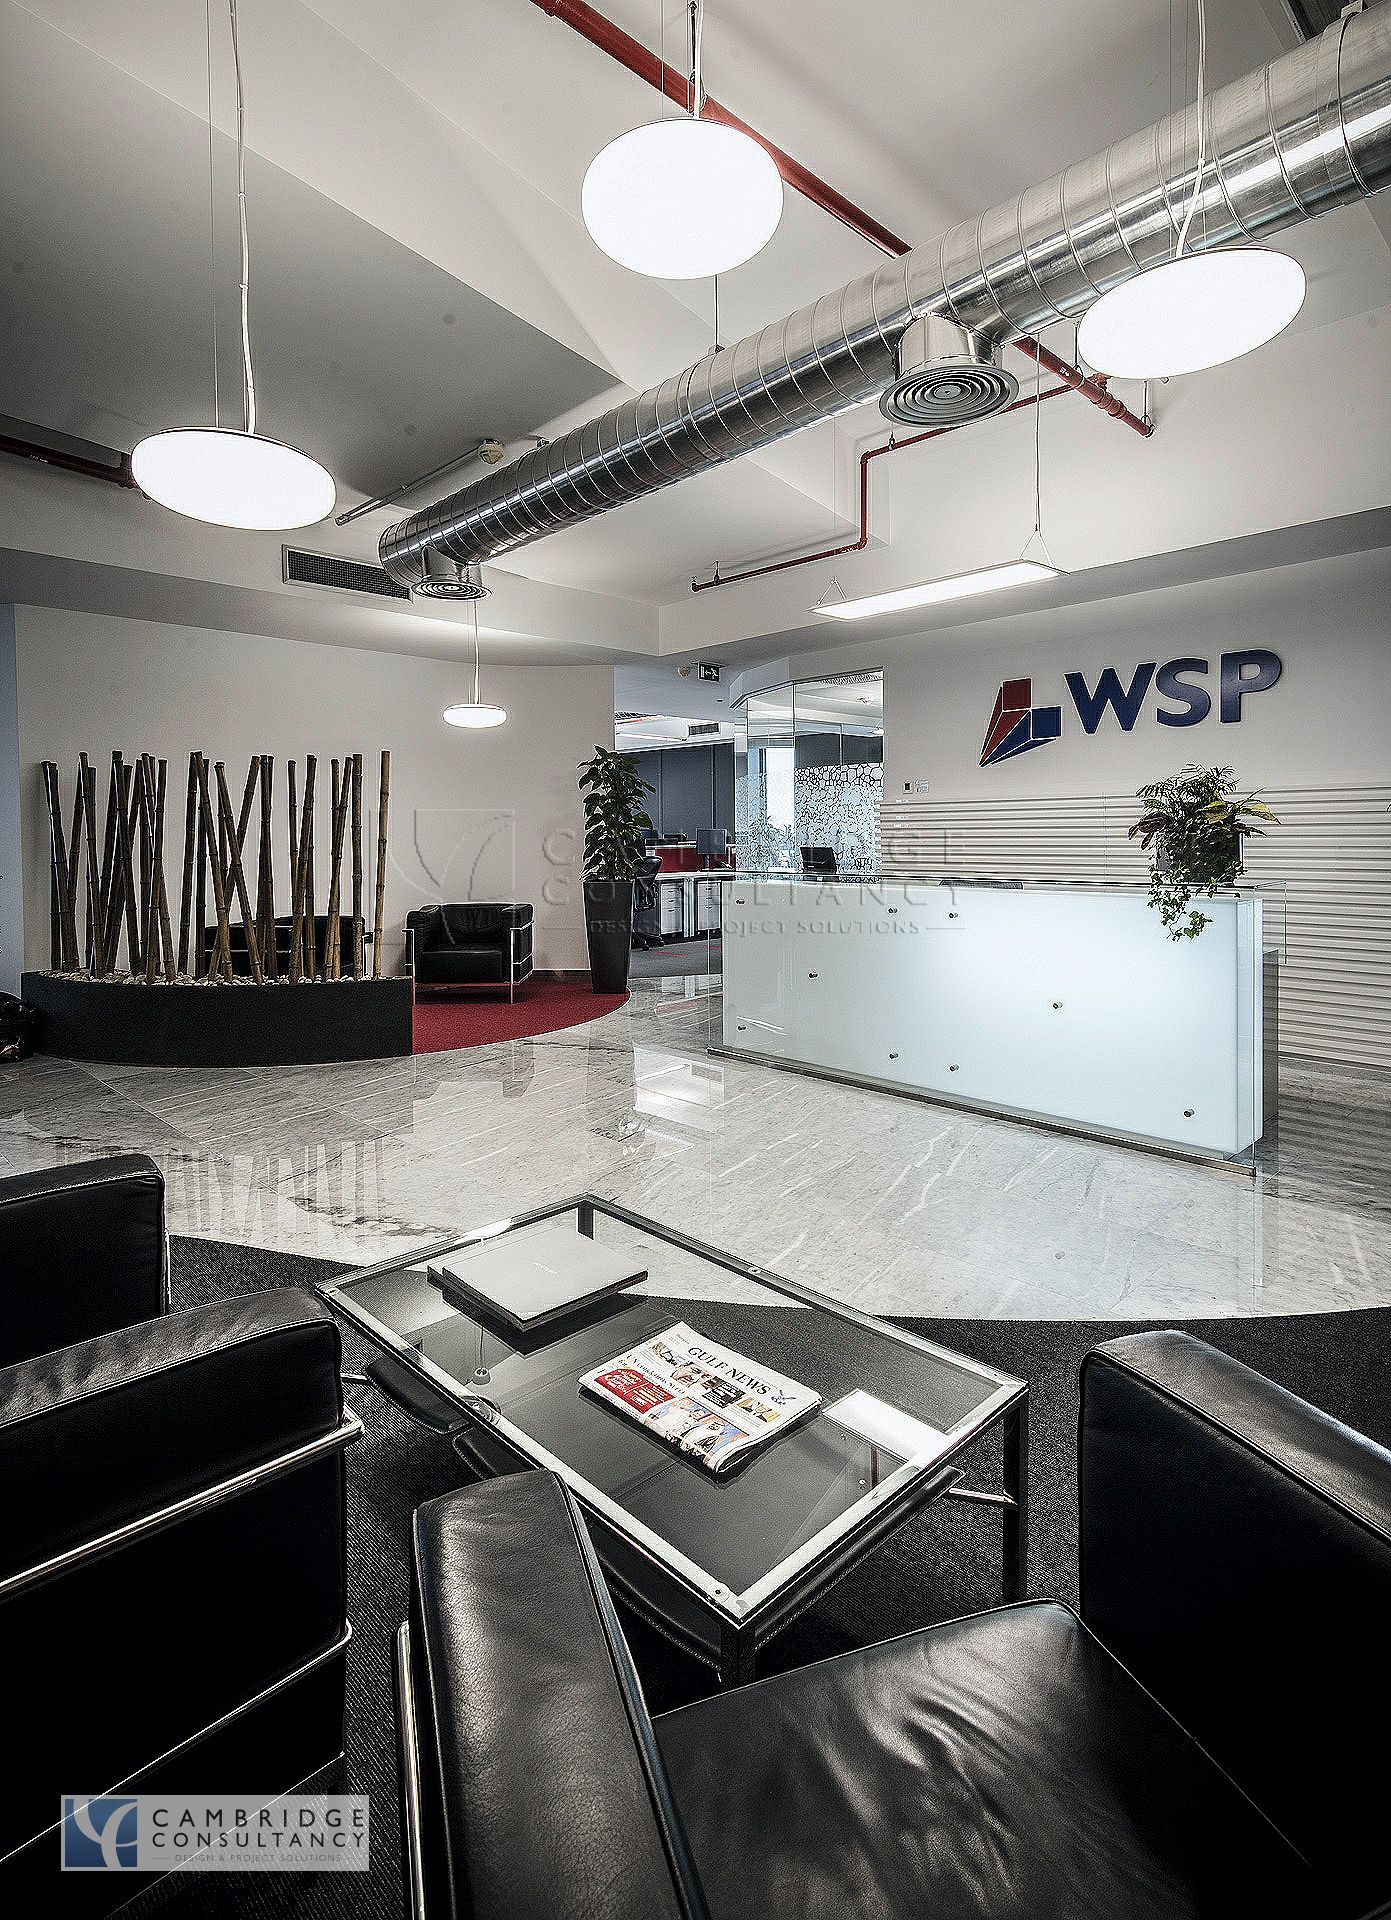 Wsp Office Modern Design Open Ceiling Industrial